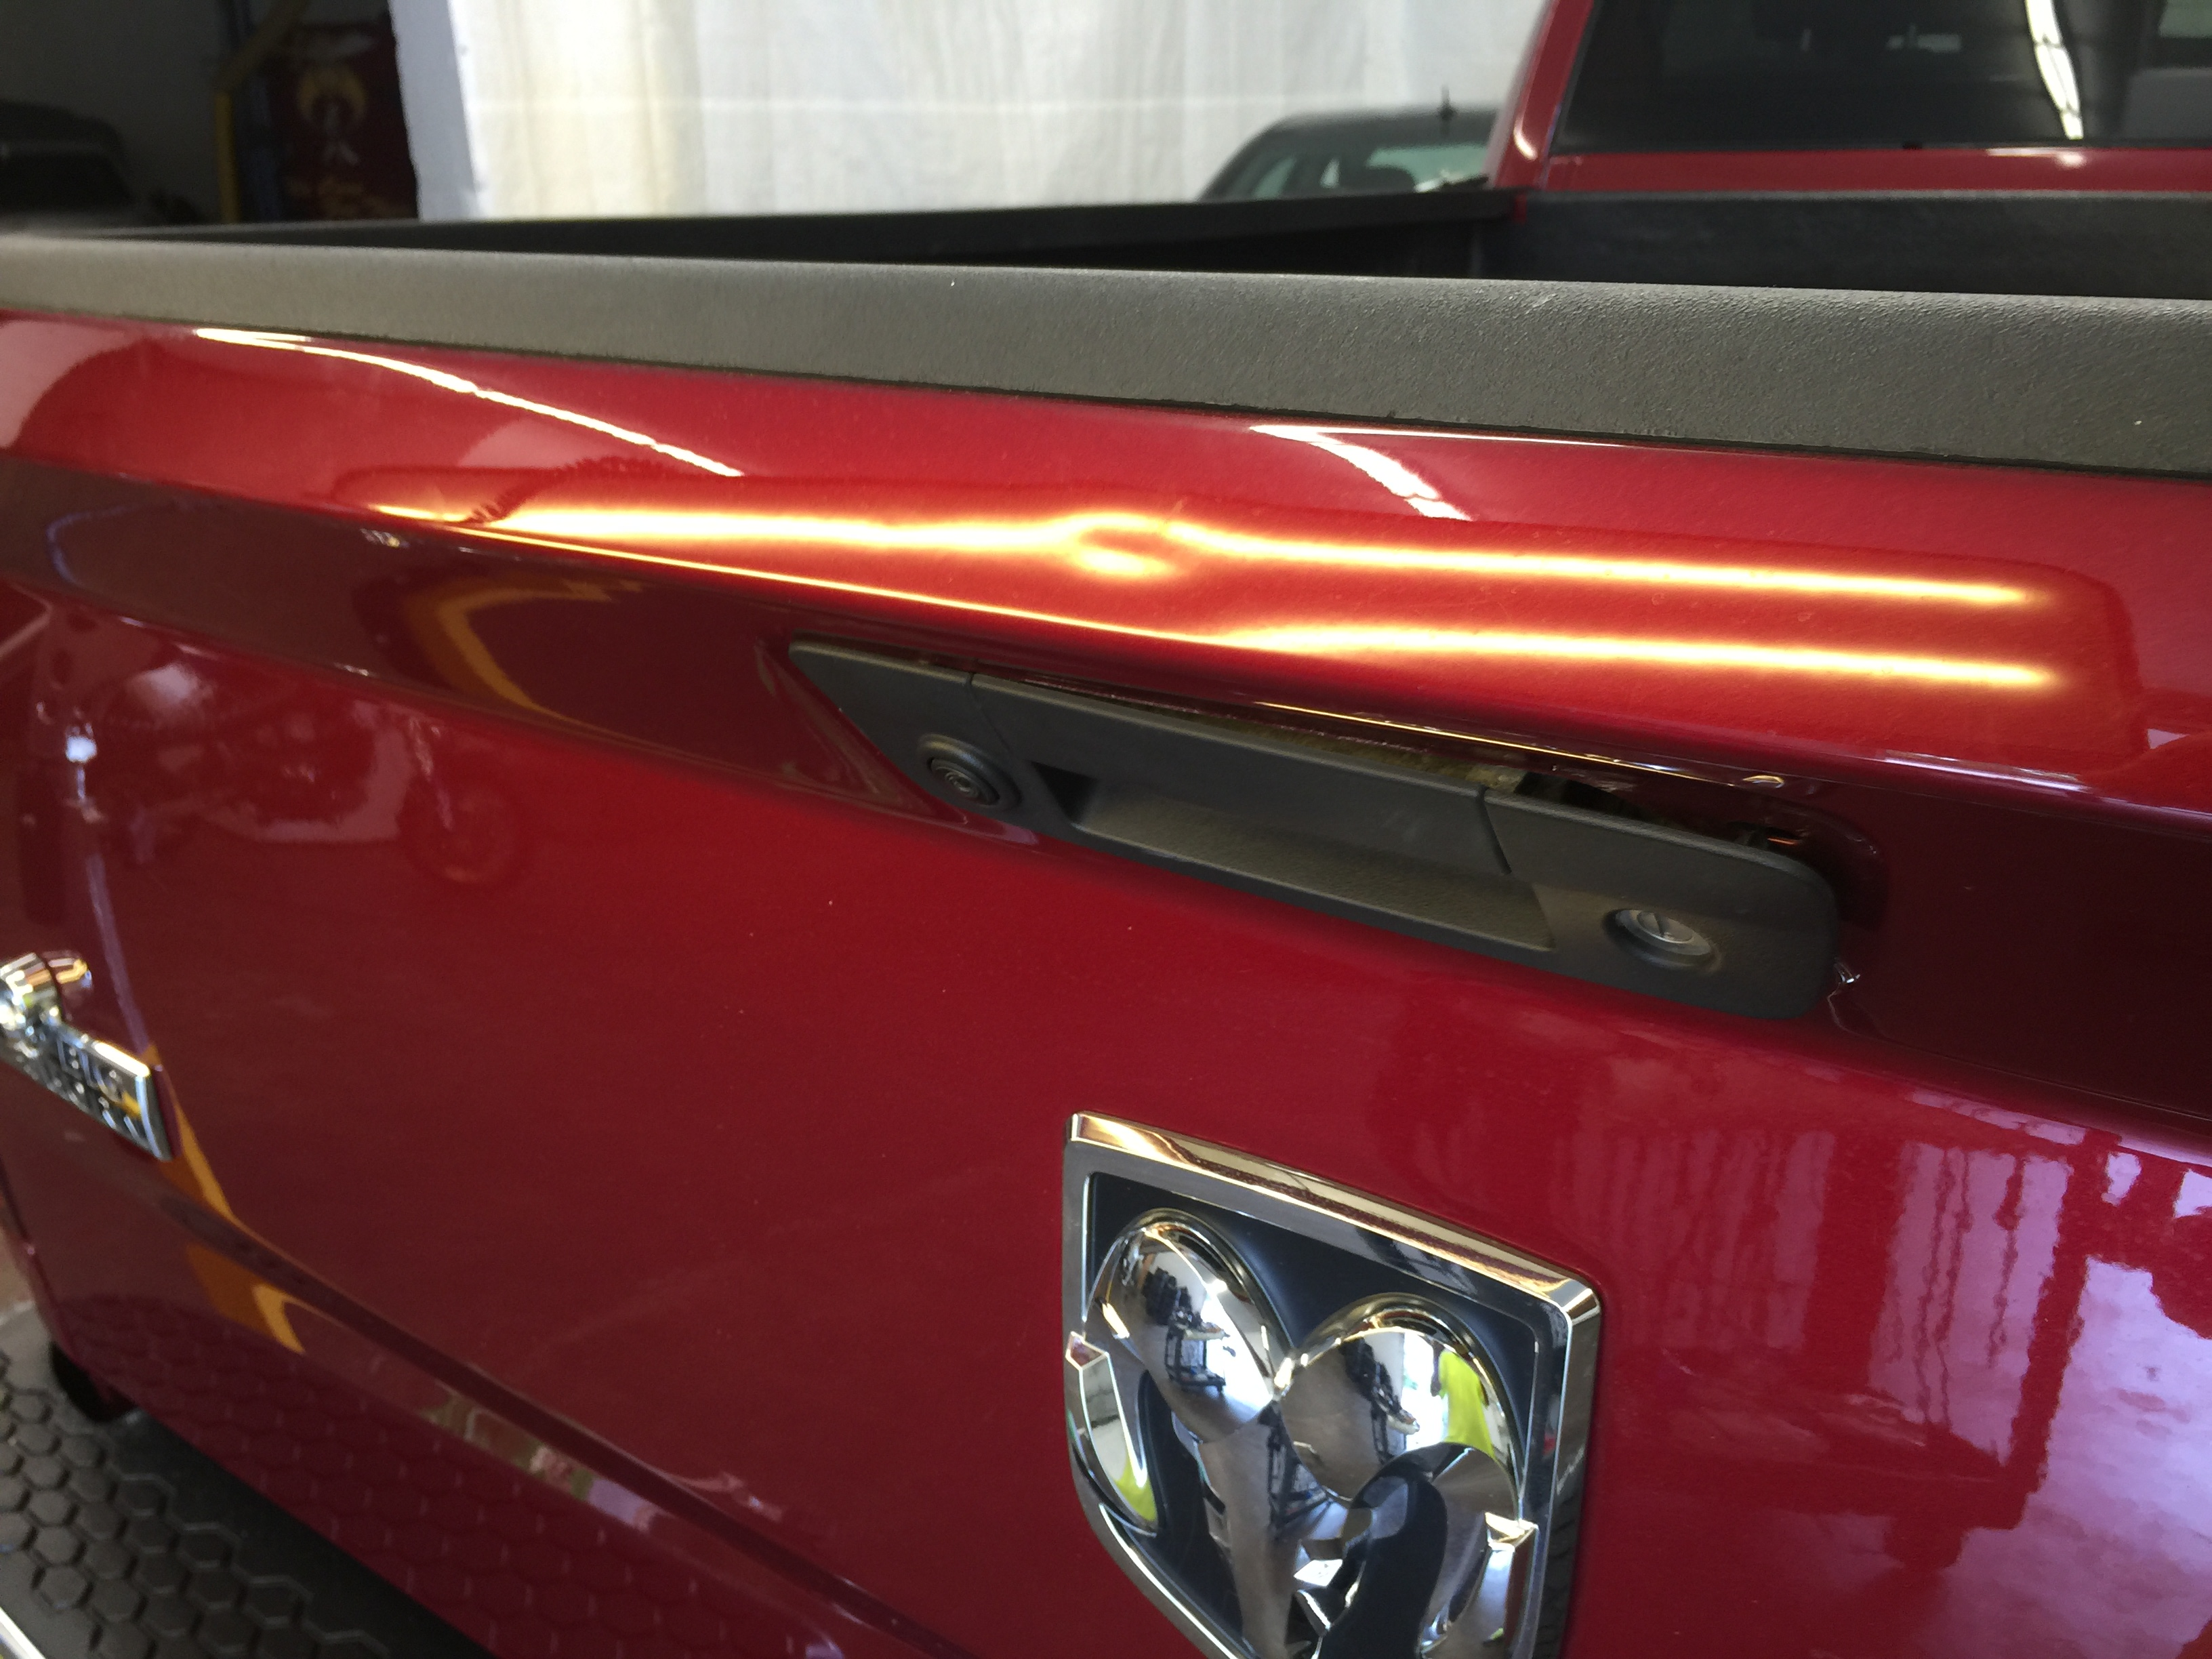 2015 Dodge Ram tailgate Dent repair in Springfield, IL, by Michael Bocek of http://217dent.com 217 dent Paintless Dent Repair